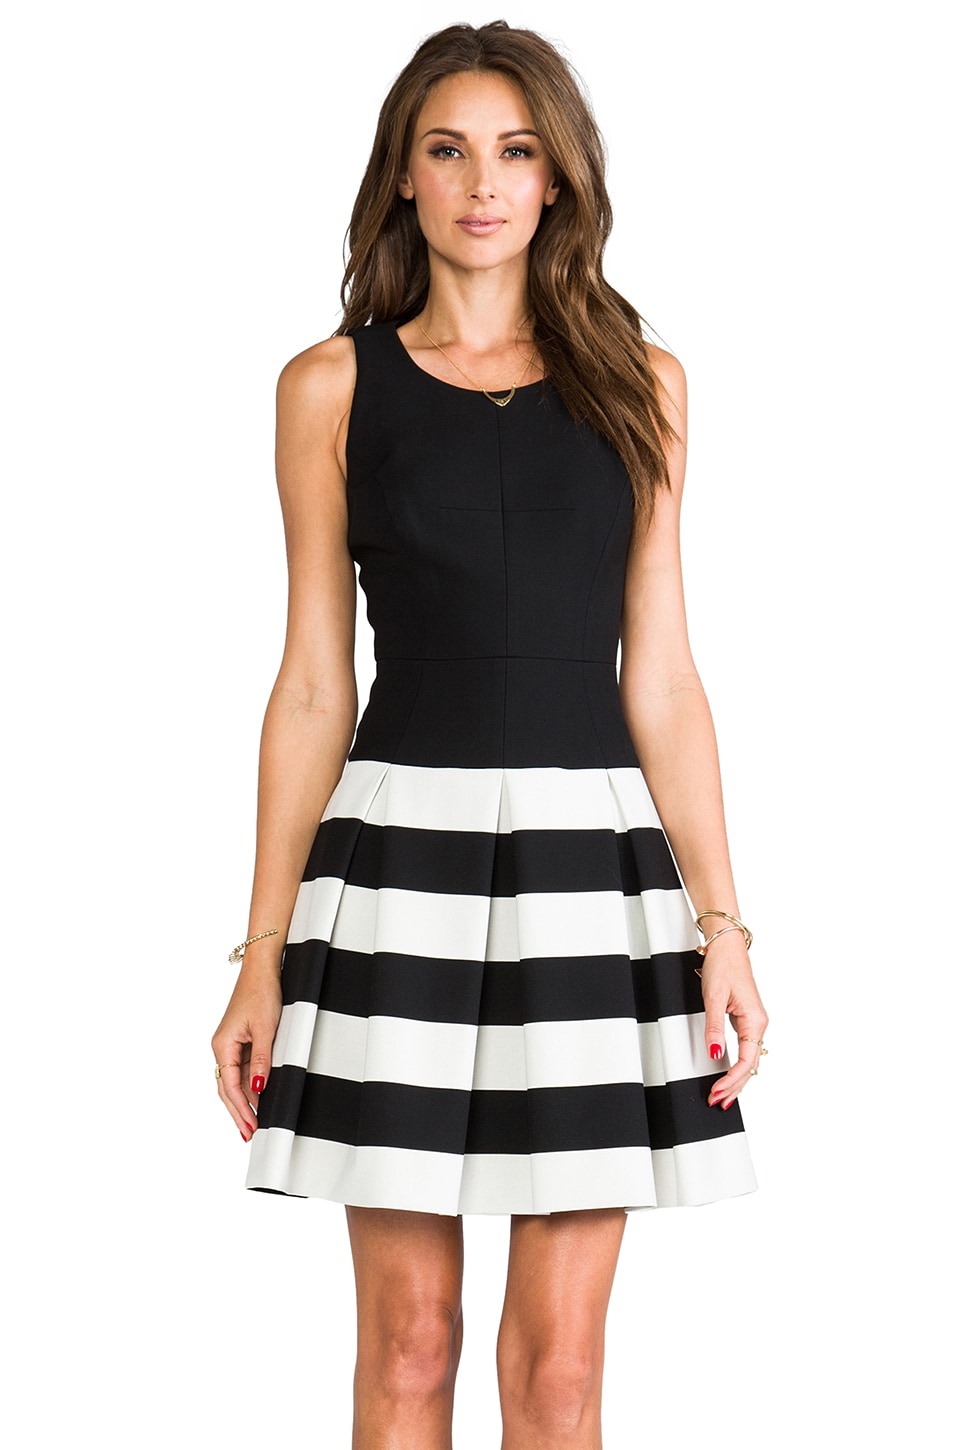 MILLY Stretch Doubleweave Drop-Waist Pleated Skirt Dress in Black/Ivory